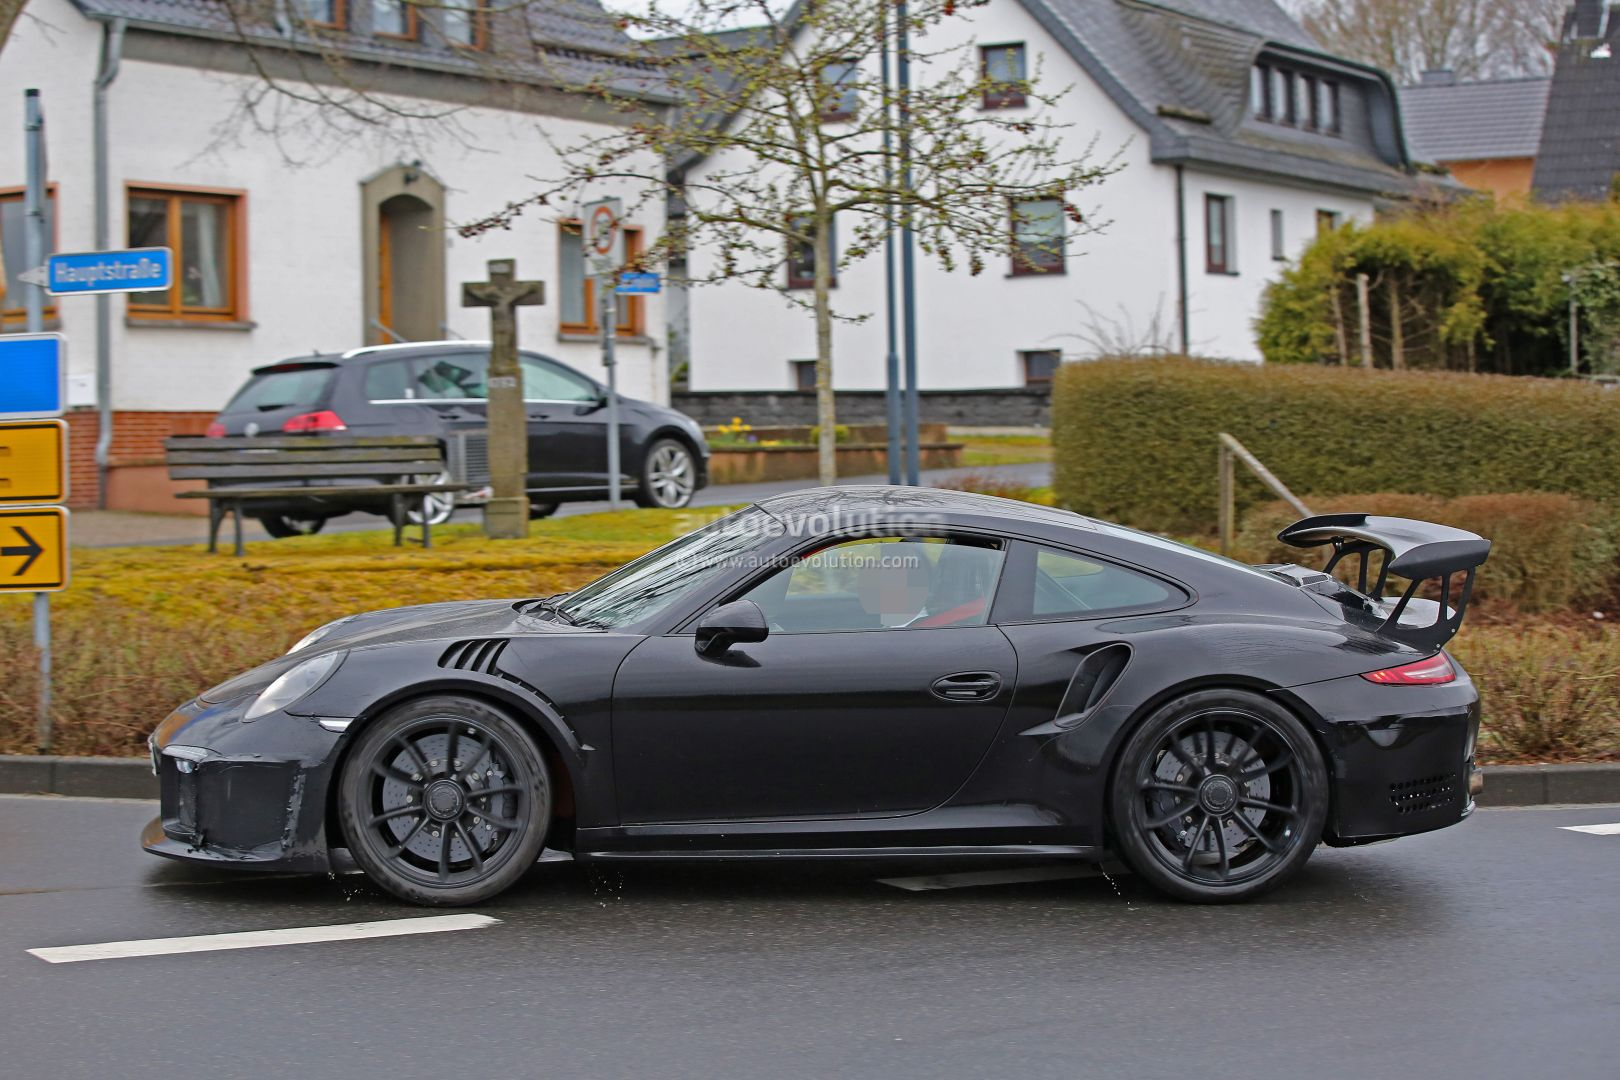 2018 Porsche 911 Gt3 Rs Spied Has 4 2l Engine 911 R Like